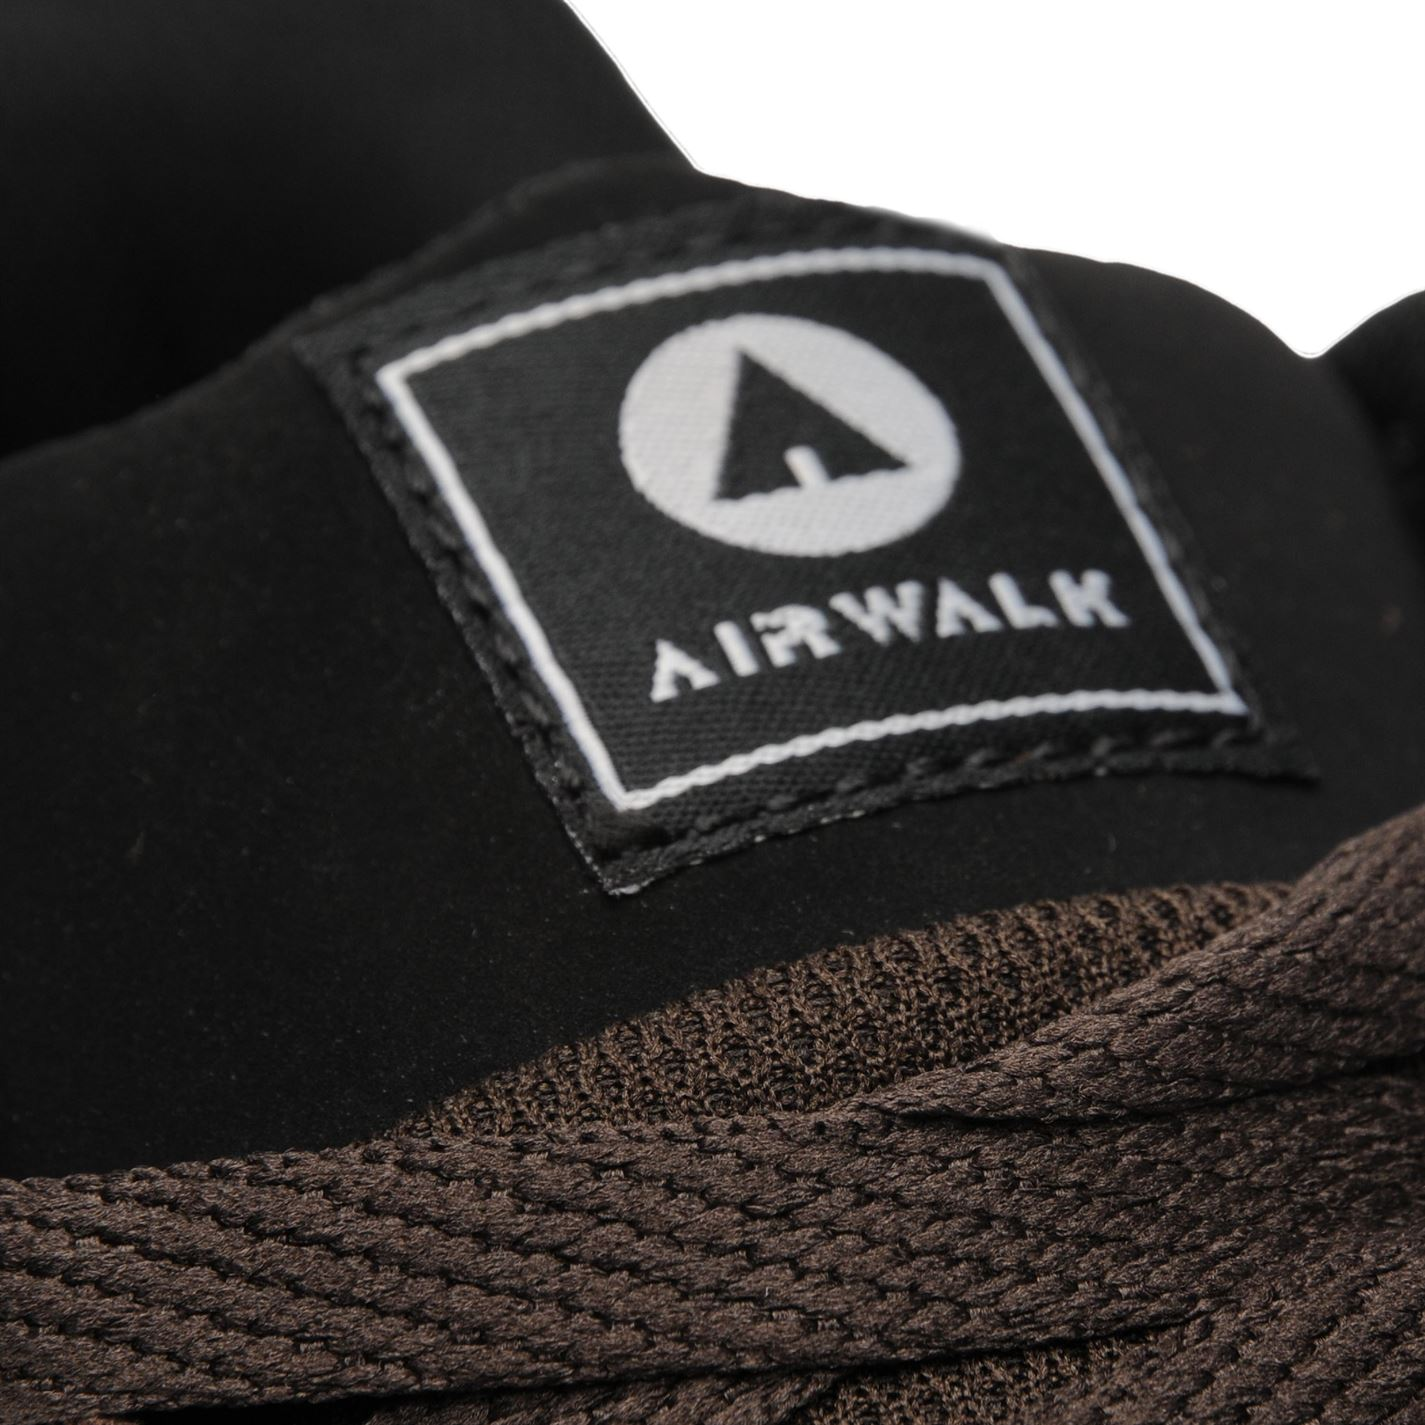 Airwalk-Mens-Brock-Skate-Shoes-Lace-Up-Suede-Accents-Sport-Casual-Trainers thumbnail 18